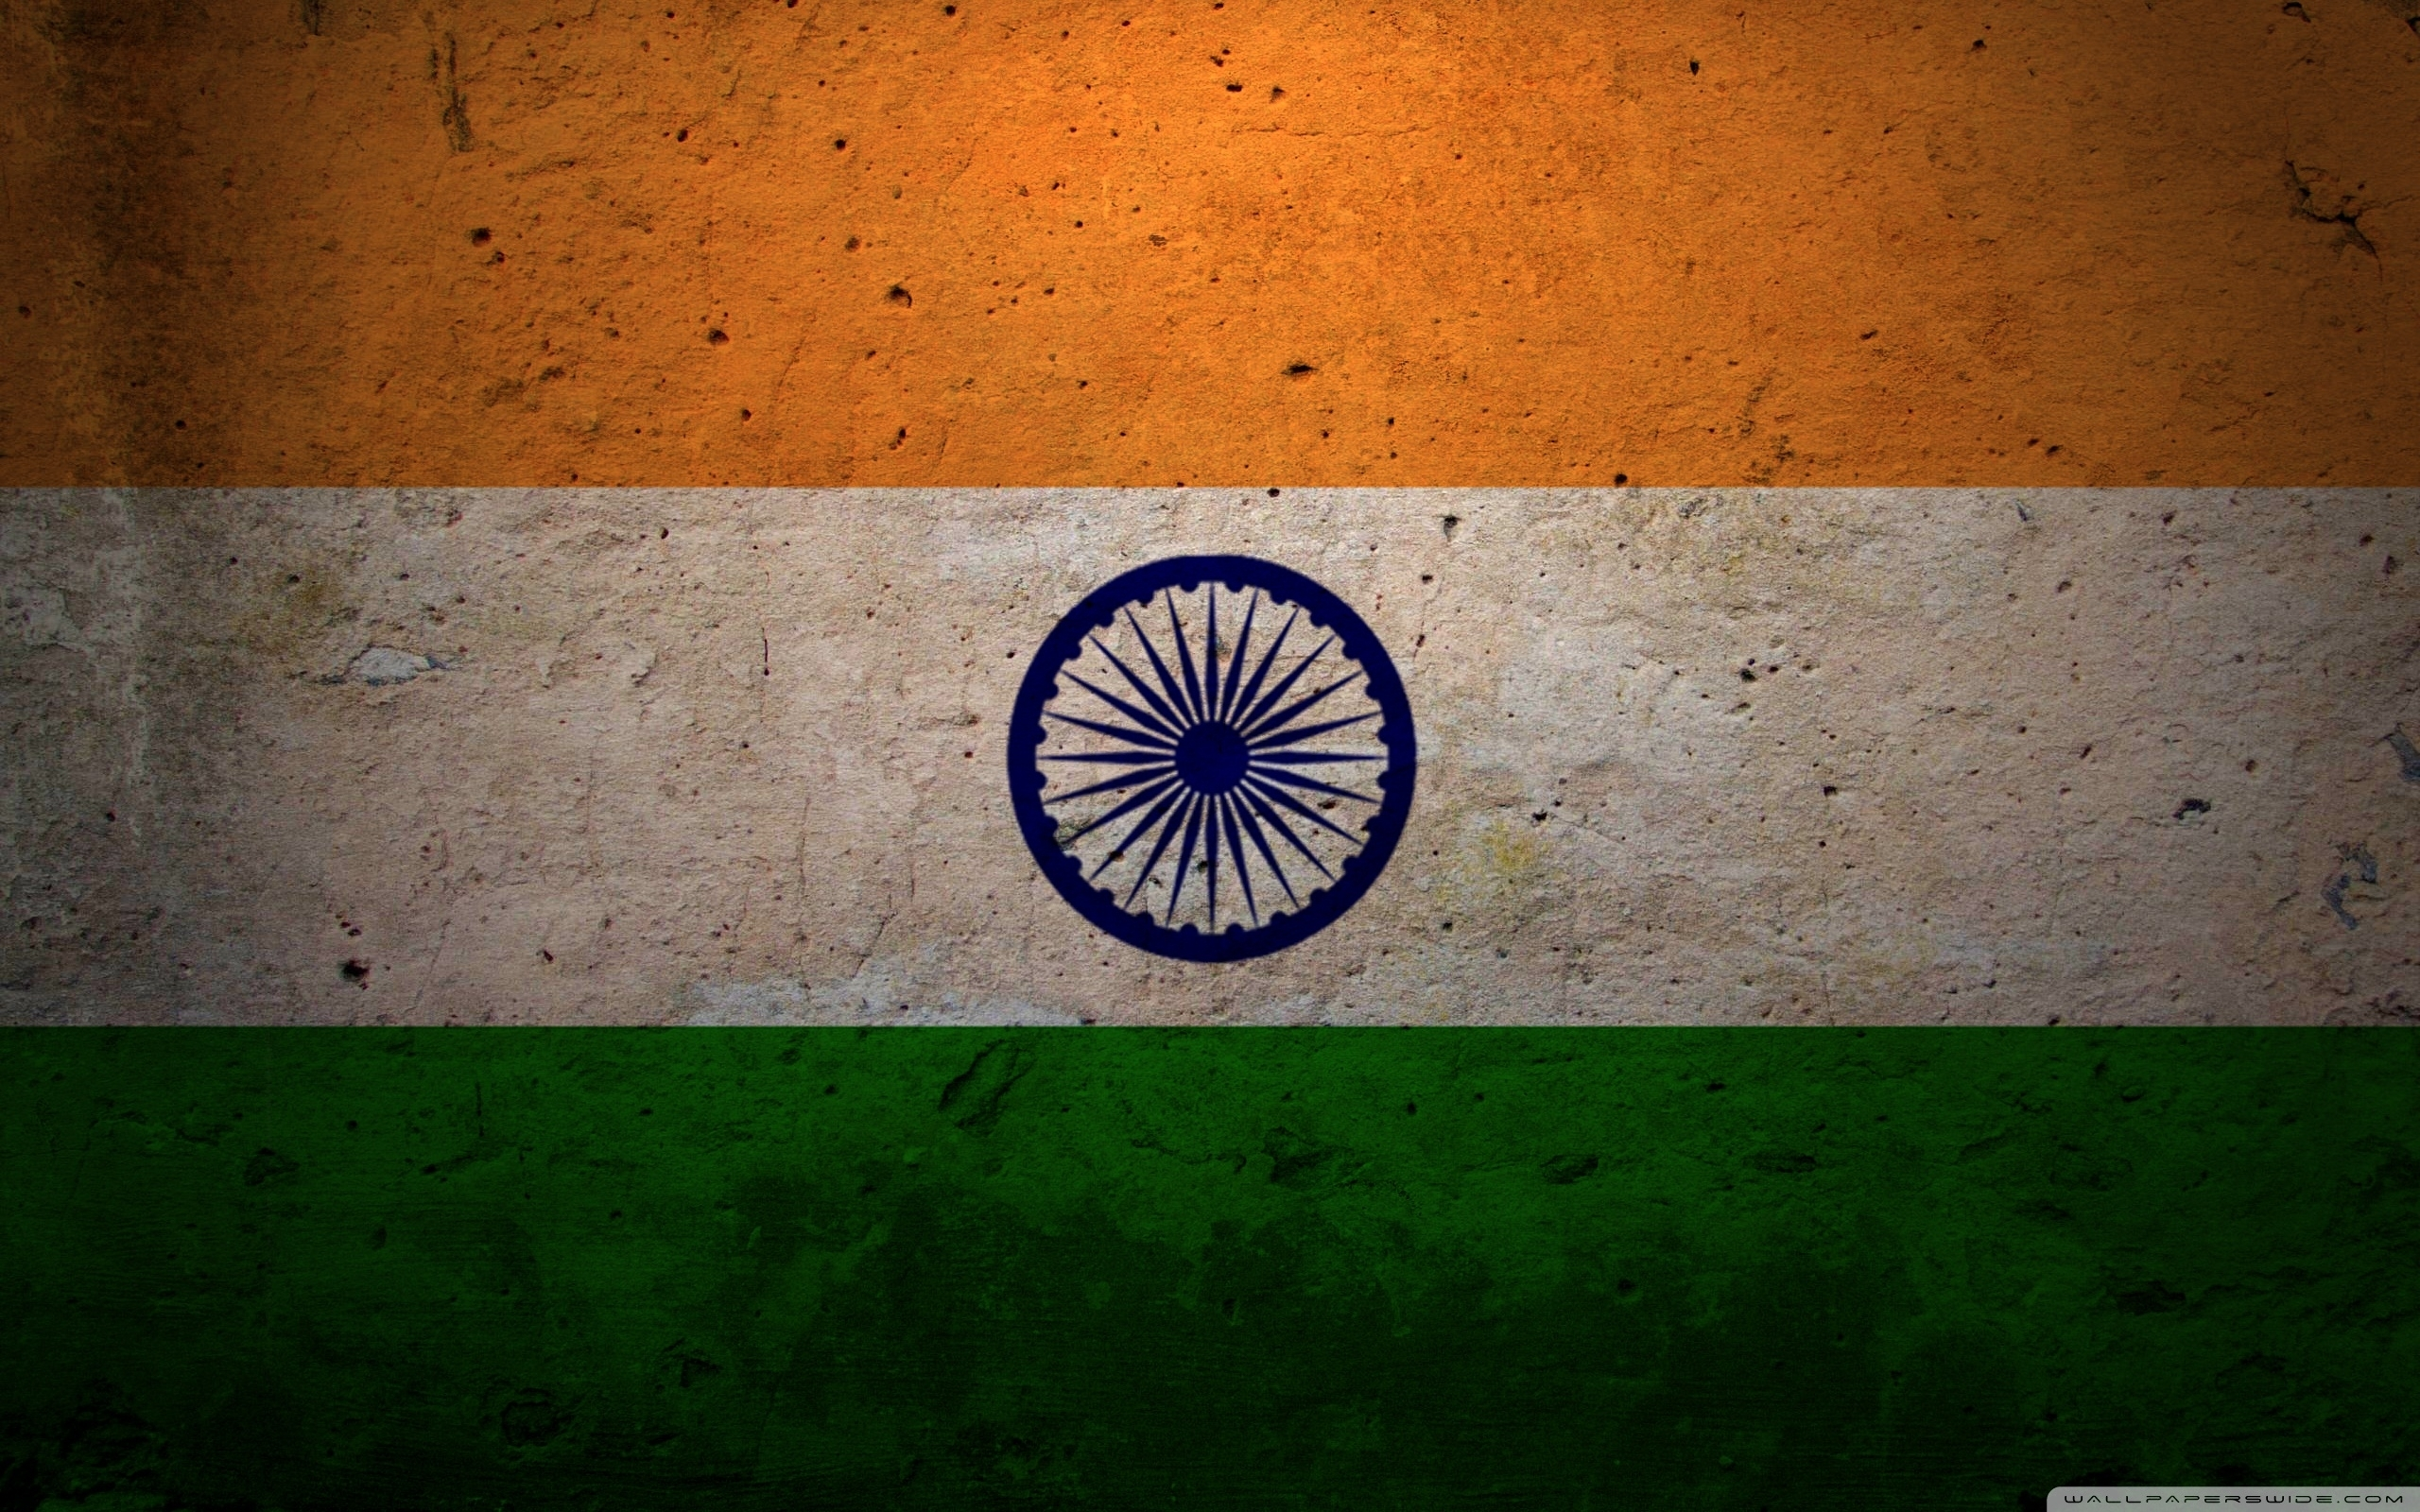 grunge flag of india ❤ 4k hd desktop wallpaper for 4k ultra hd tv